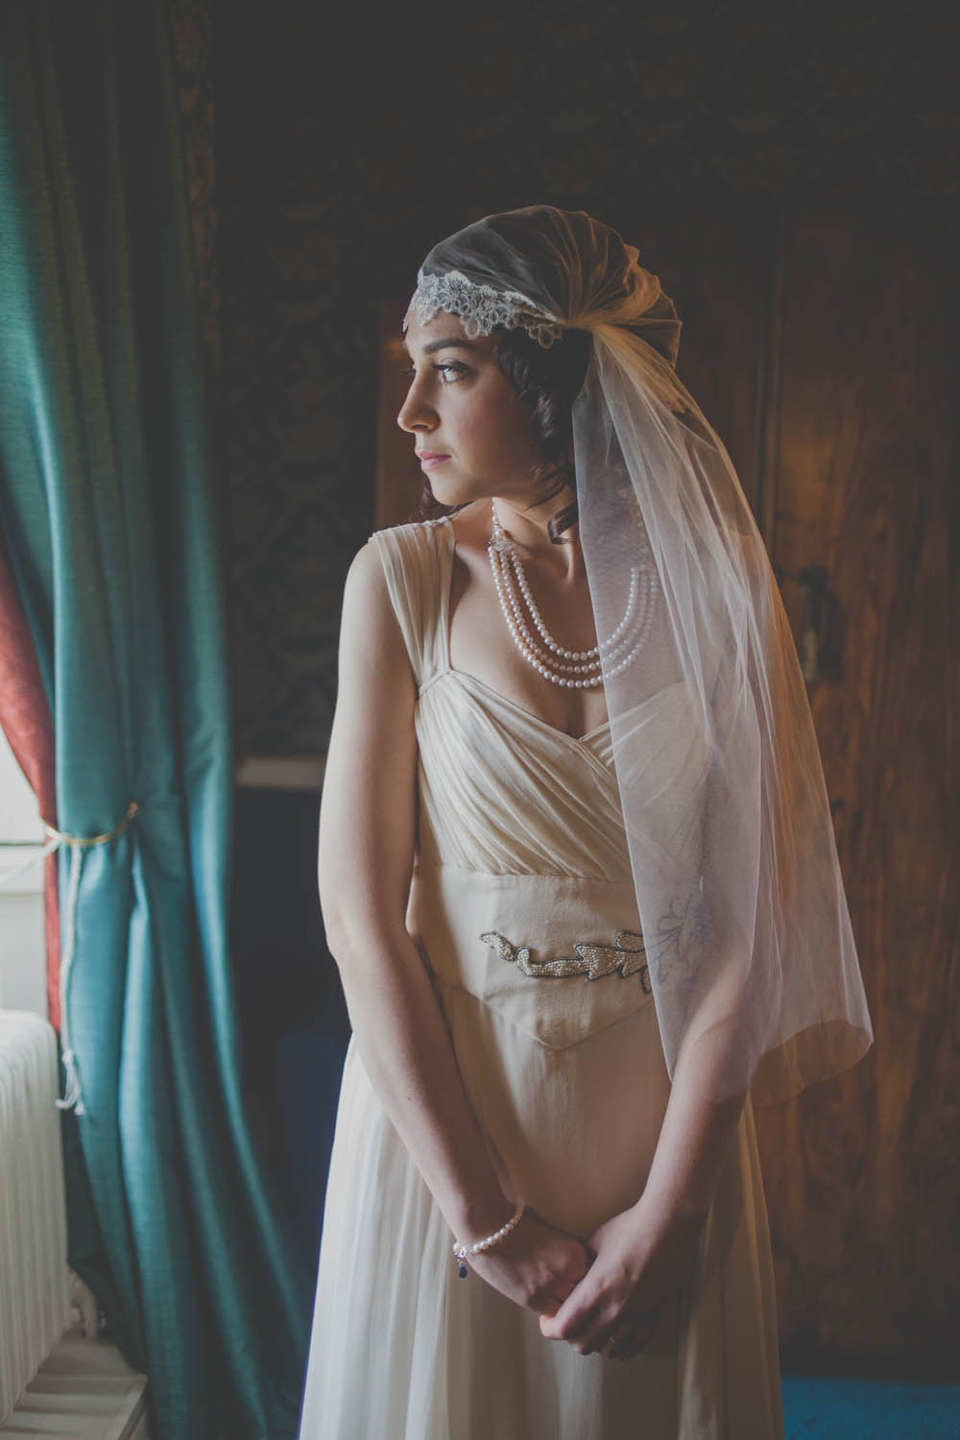 A Charlotte Casadéjus Gown and Juliet Cap Veil For A 1930s Inspired Winter Wedding